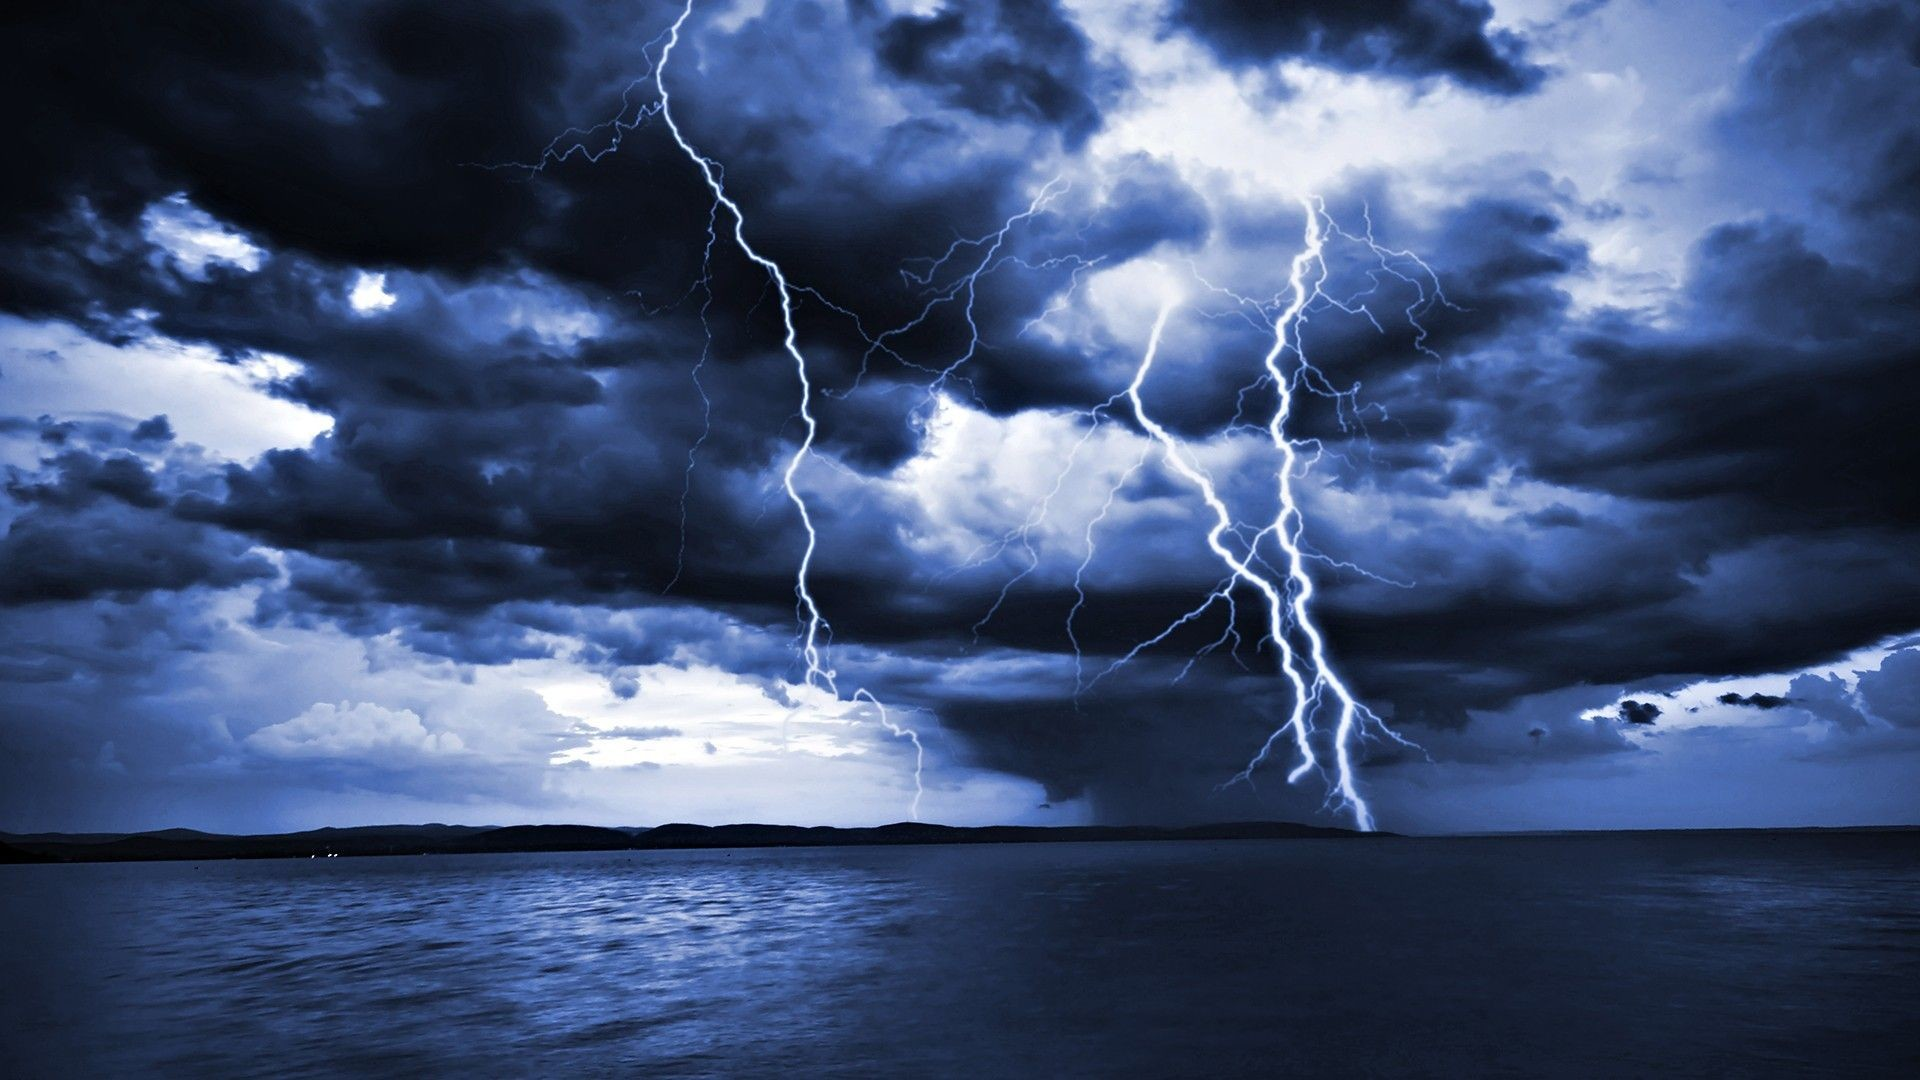 Res: 1920x1080, Thunderstorm Wallpapers Images